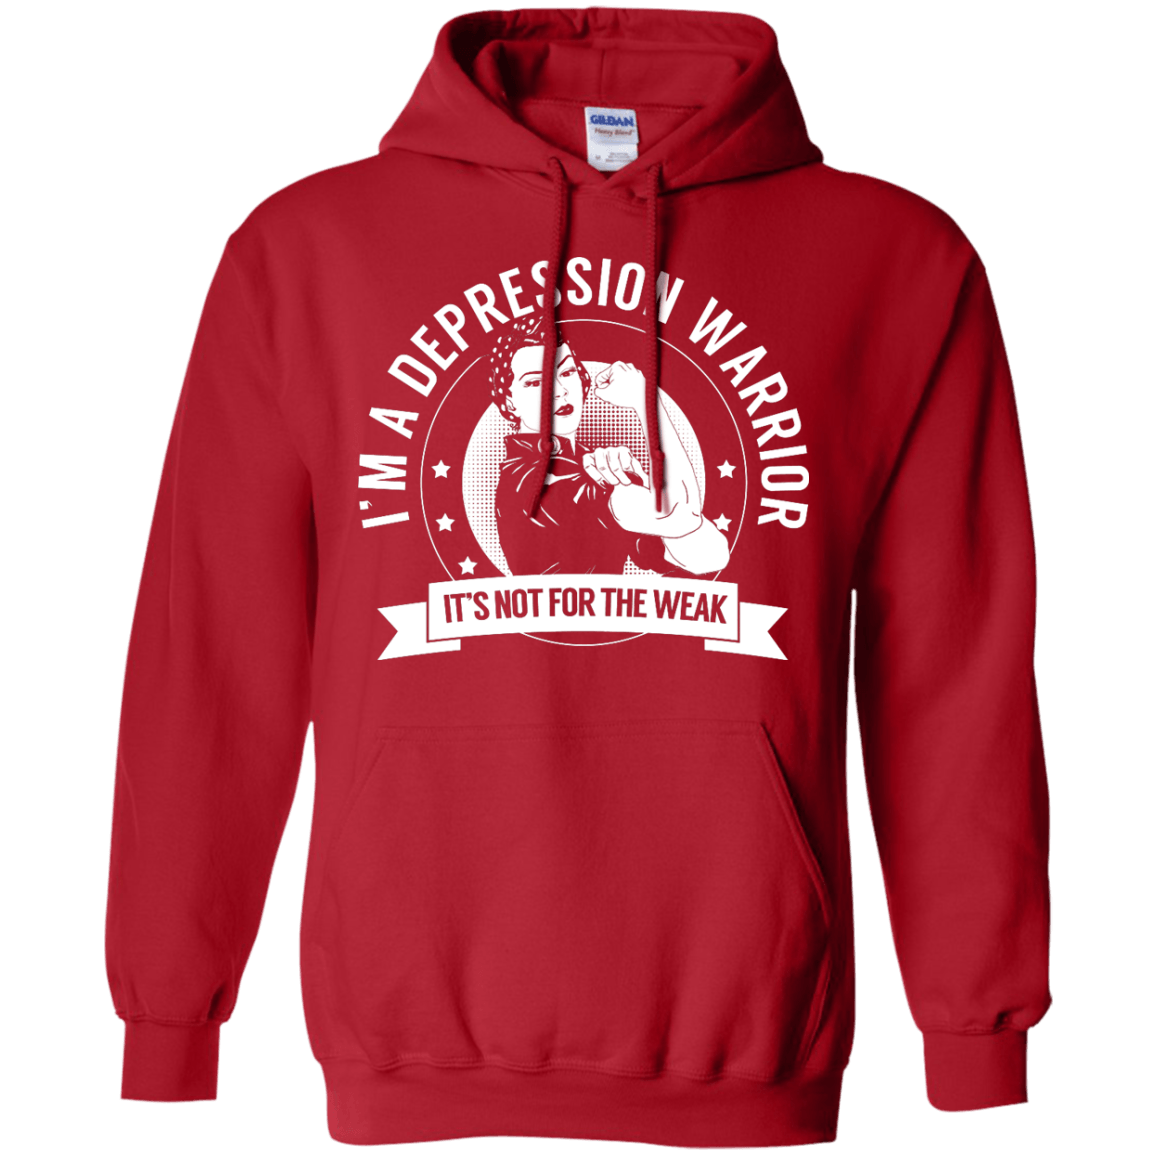 Depression Warrior Not for the Weak Pullover Hoodie 8 oz - The Unchargeables